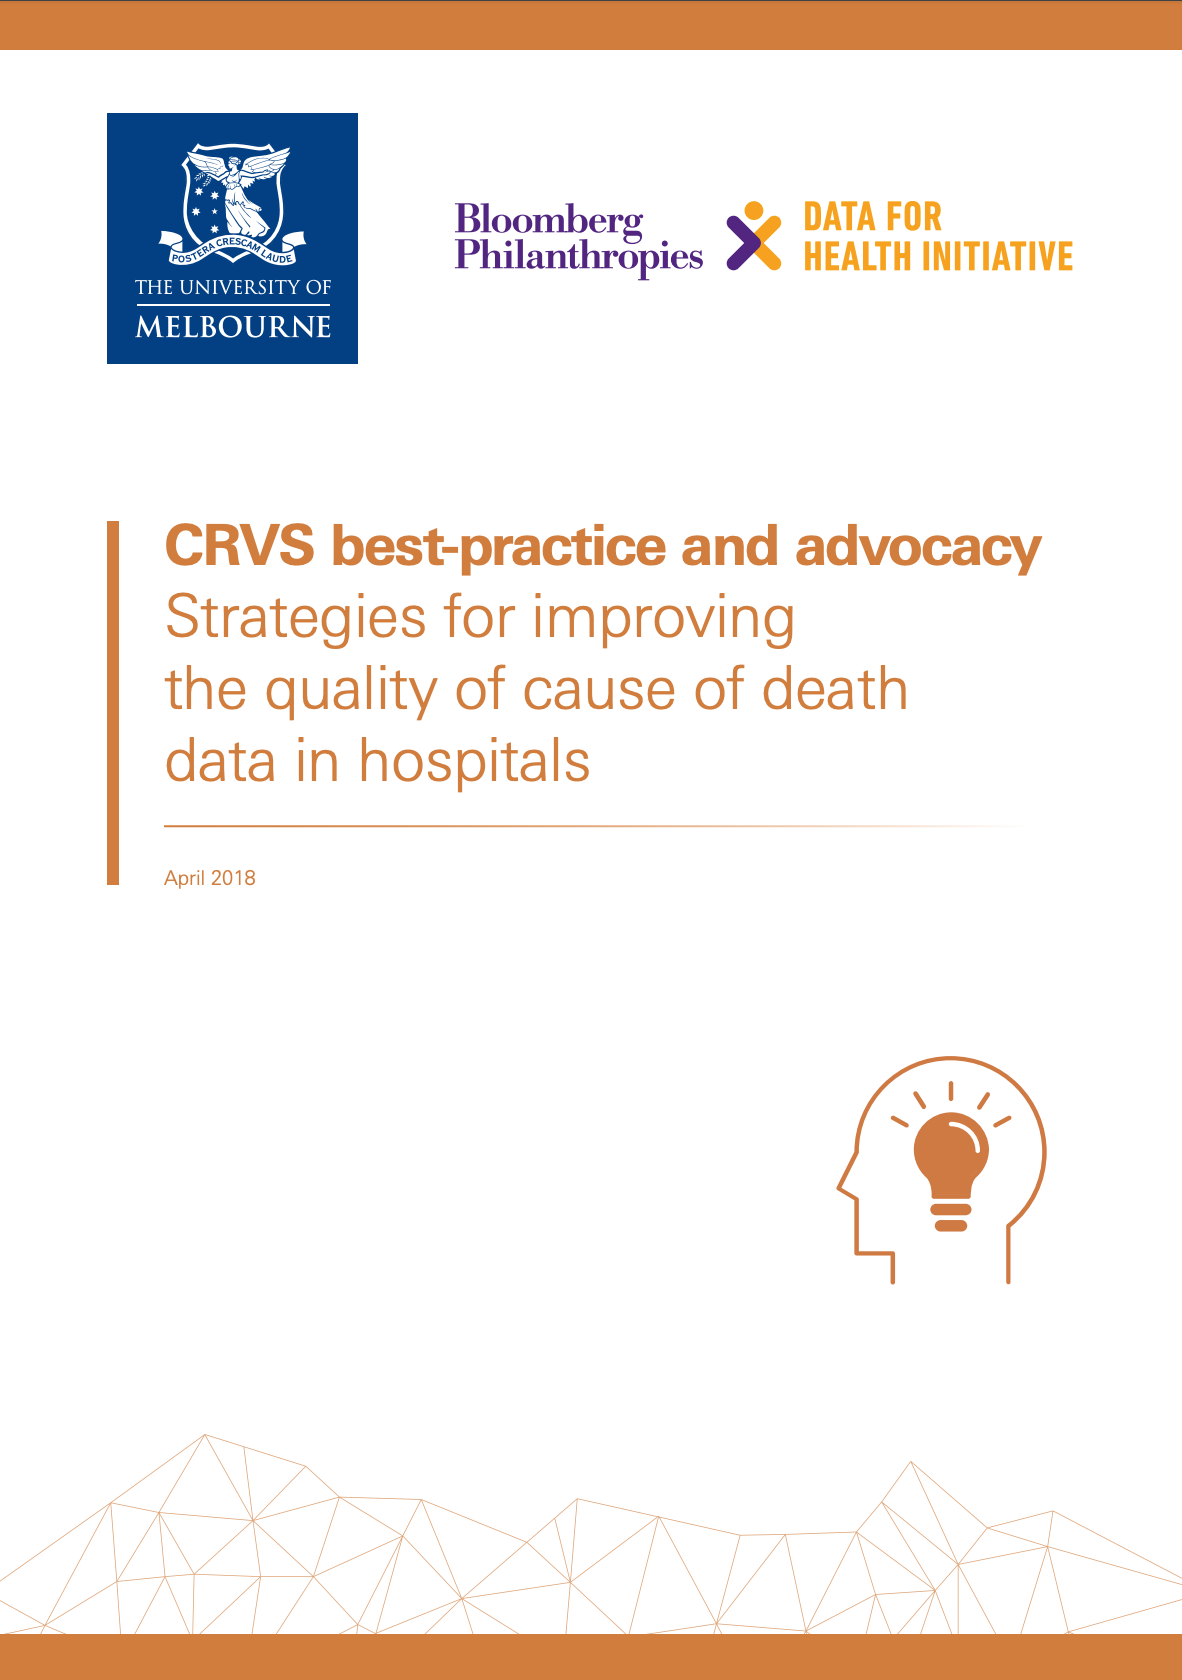 Strategies for improving the quality of cause of death data in hospitals